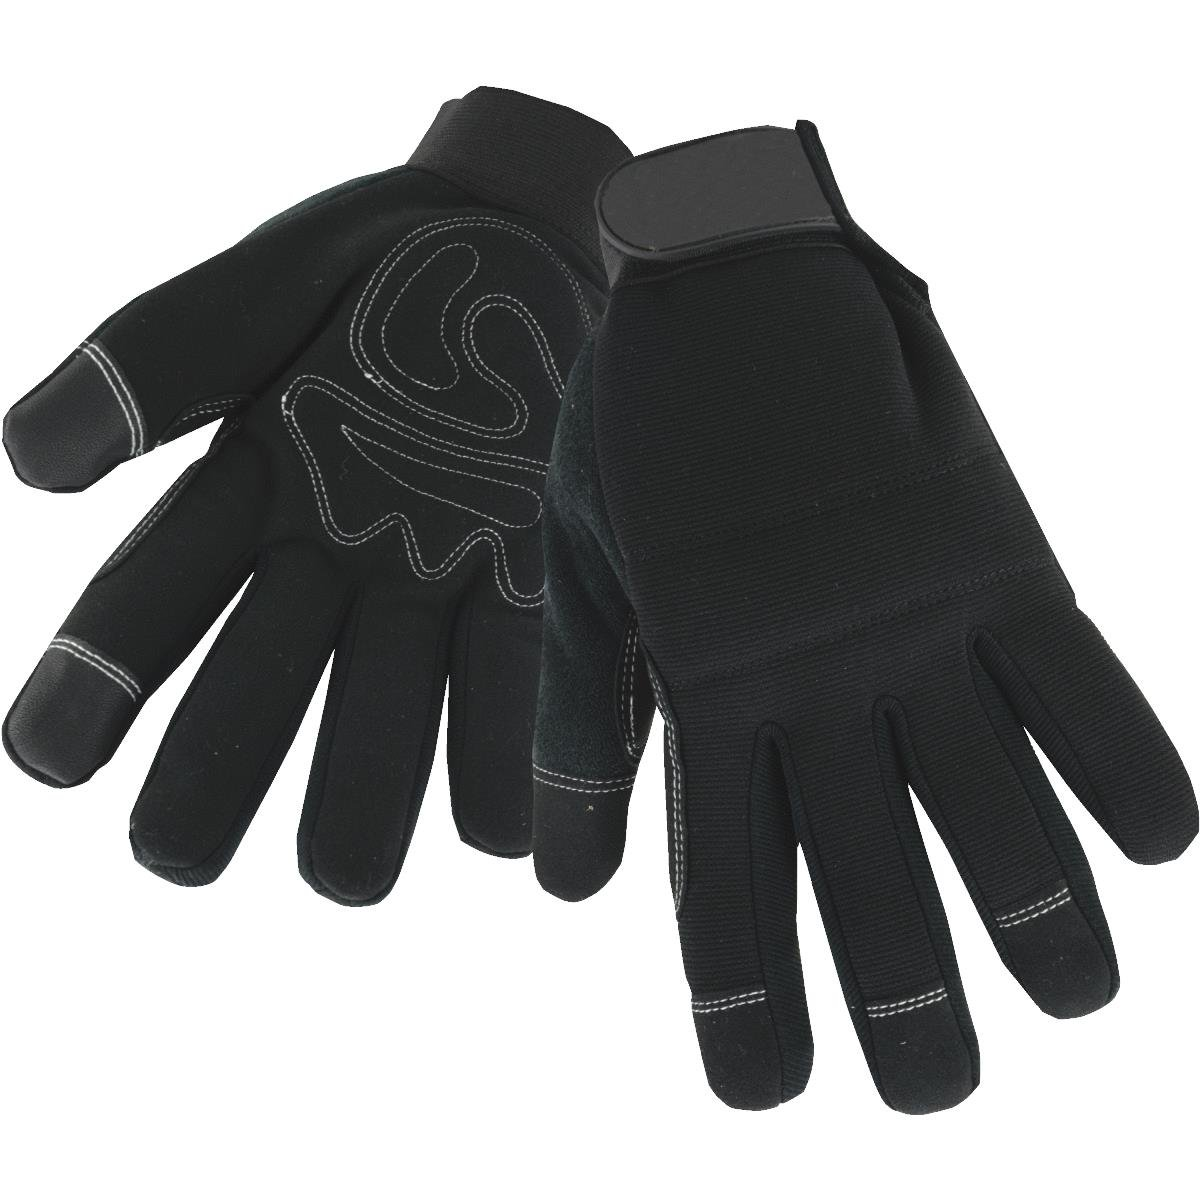 WEST CHESTER 96580/XL Hi-Dex Thin Long Glove Extra Large by West Chester